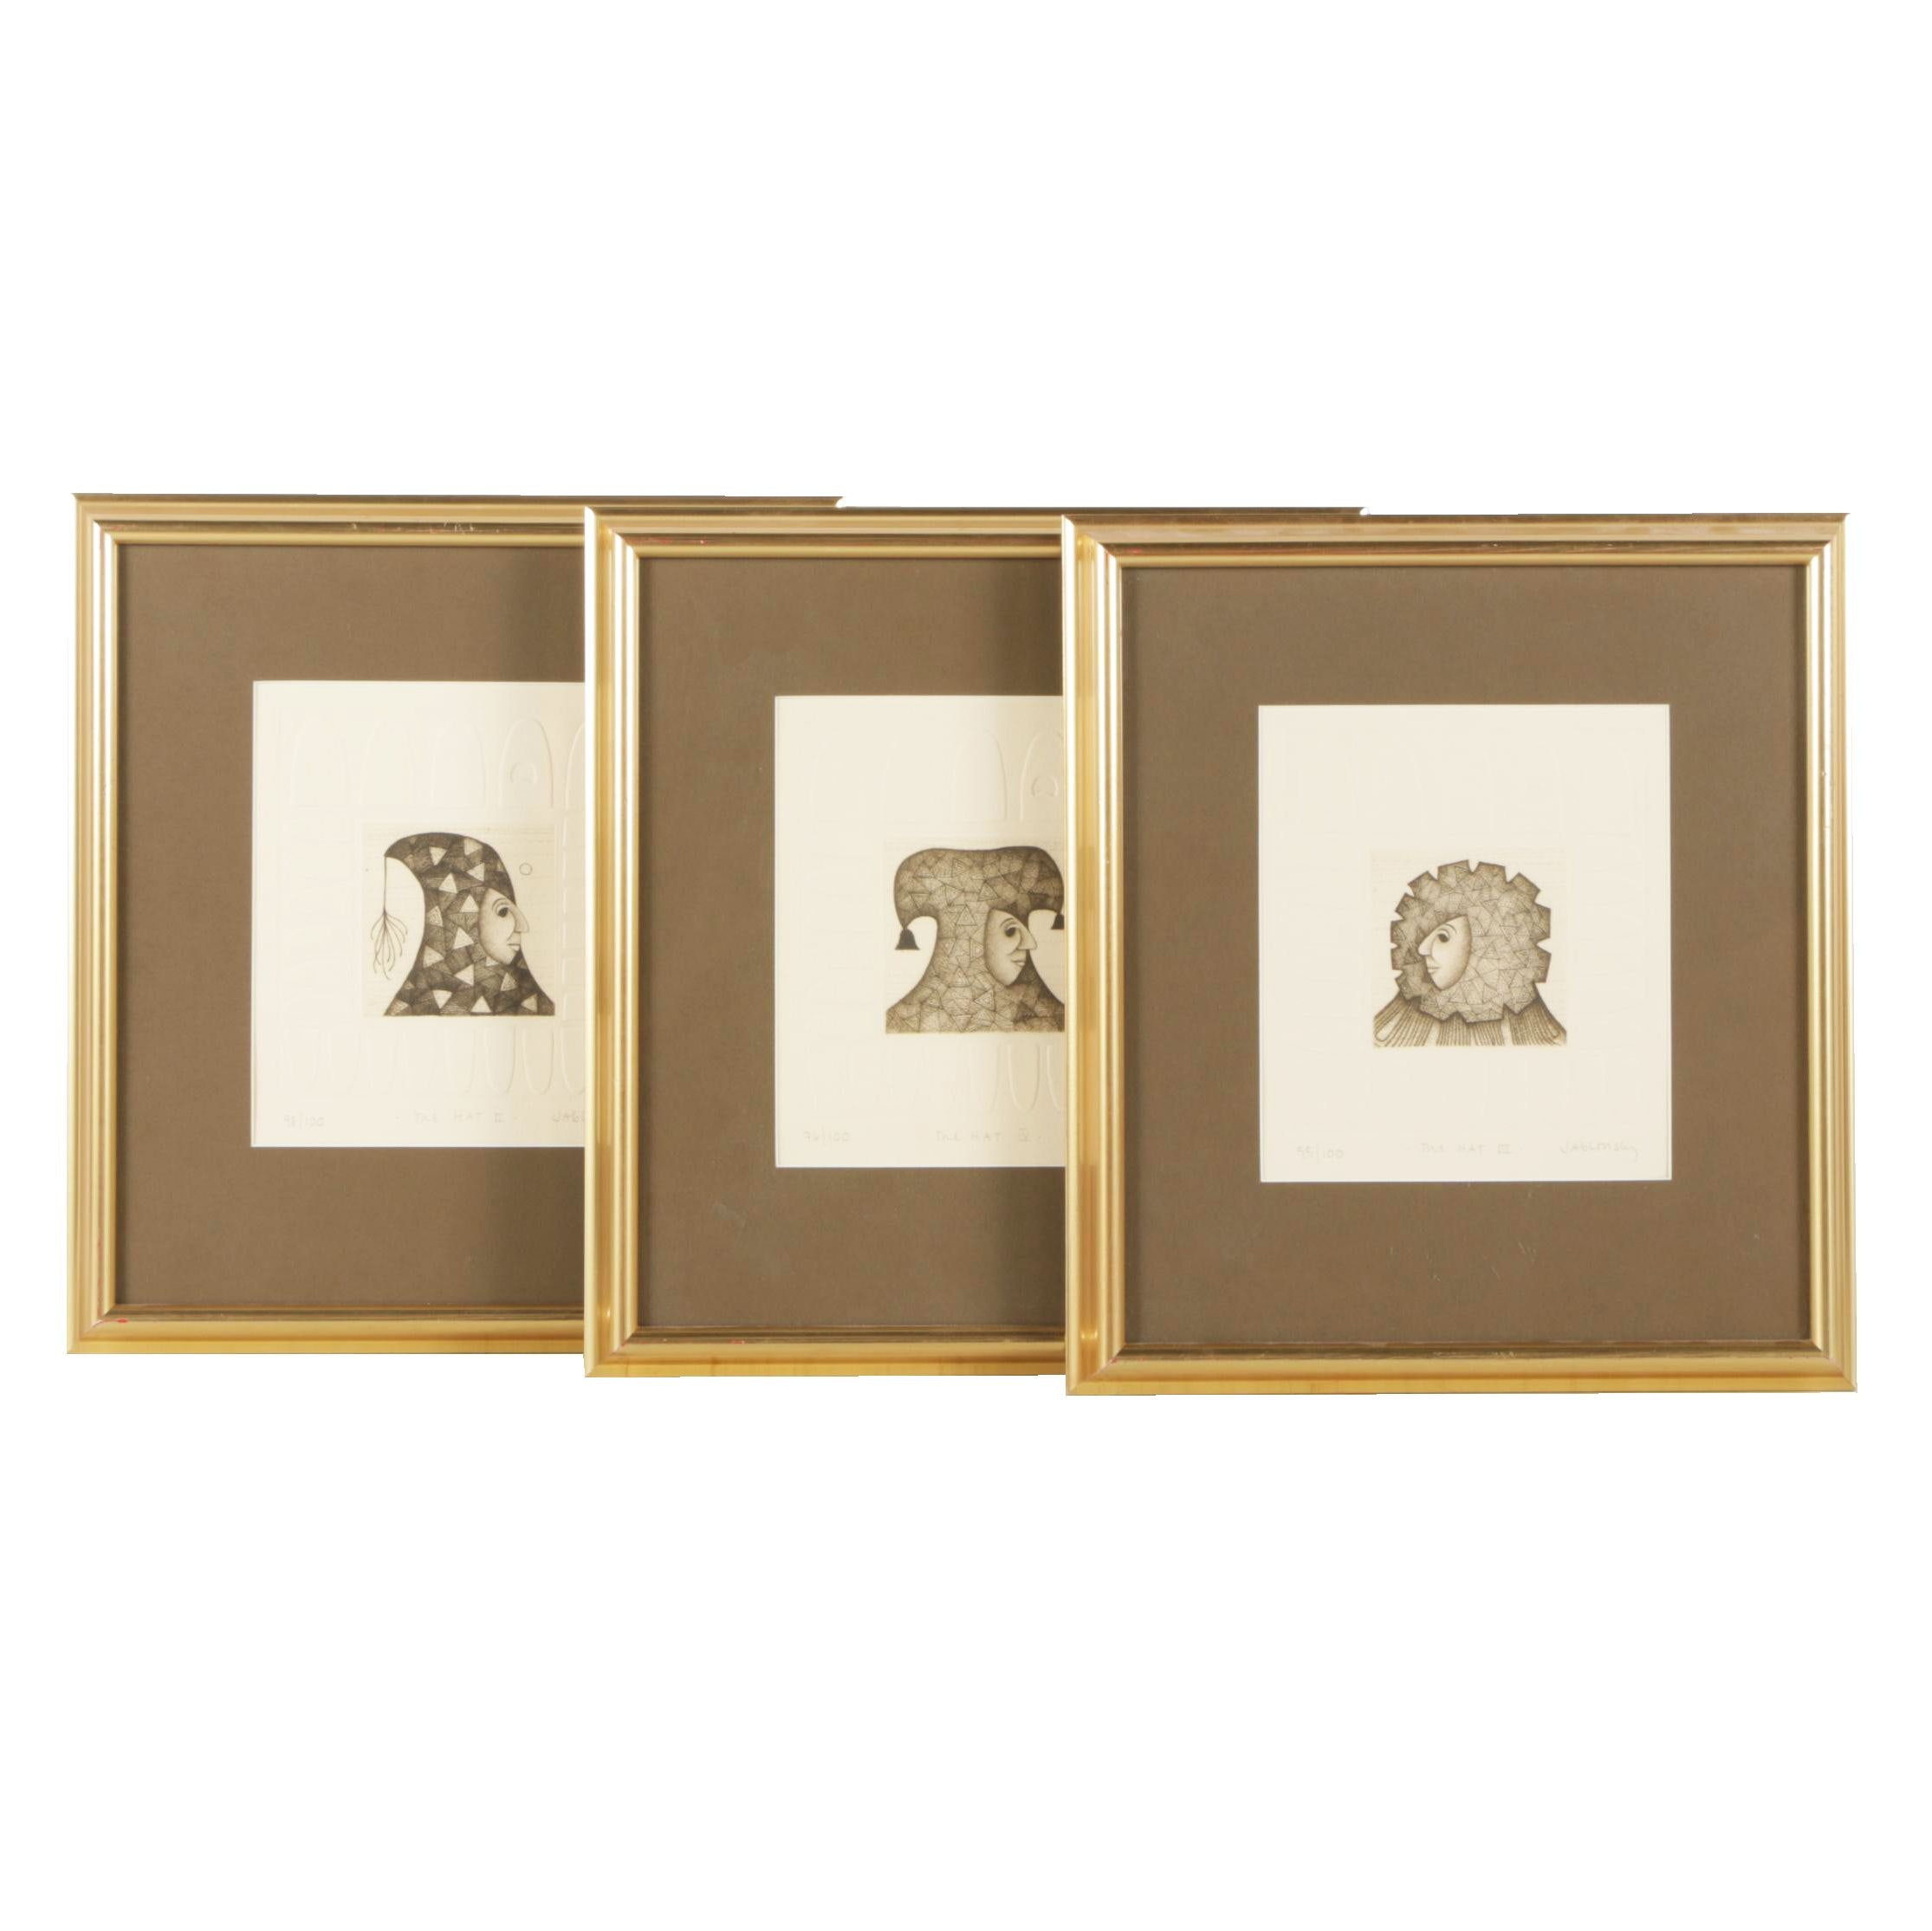 Three Carol Jablonsky Etchings with Embossment